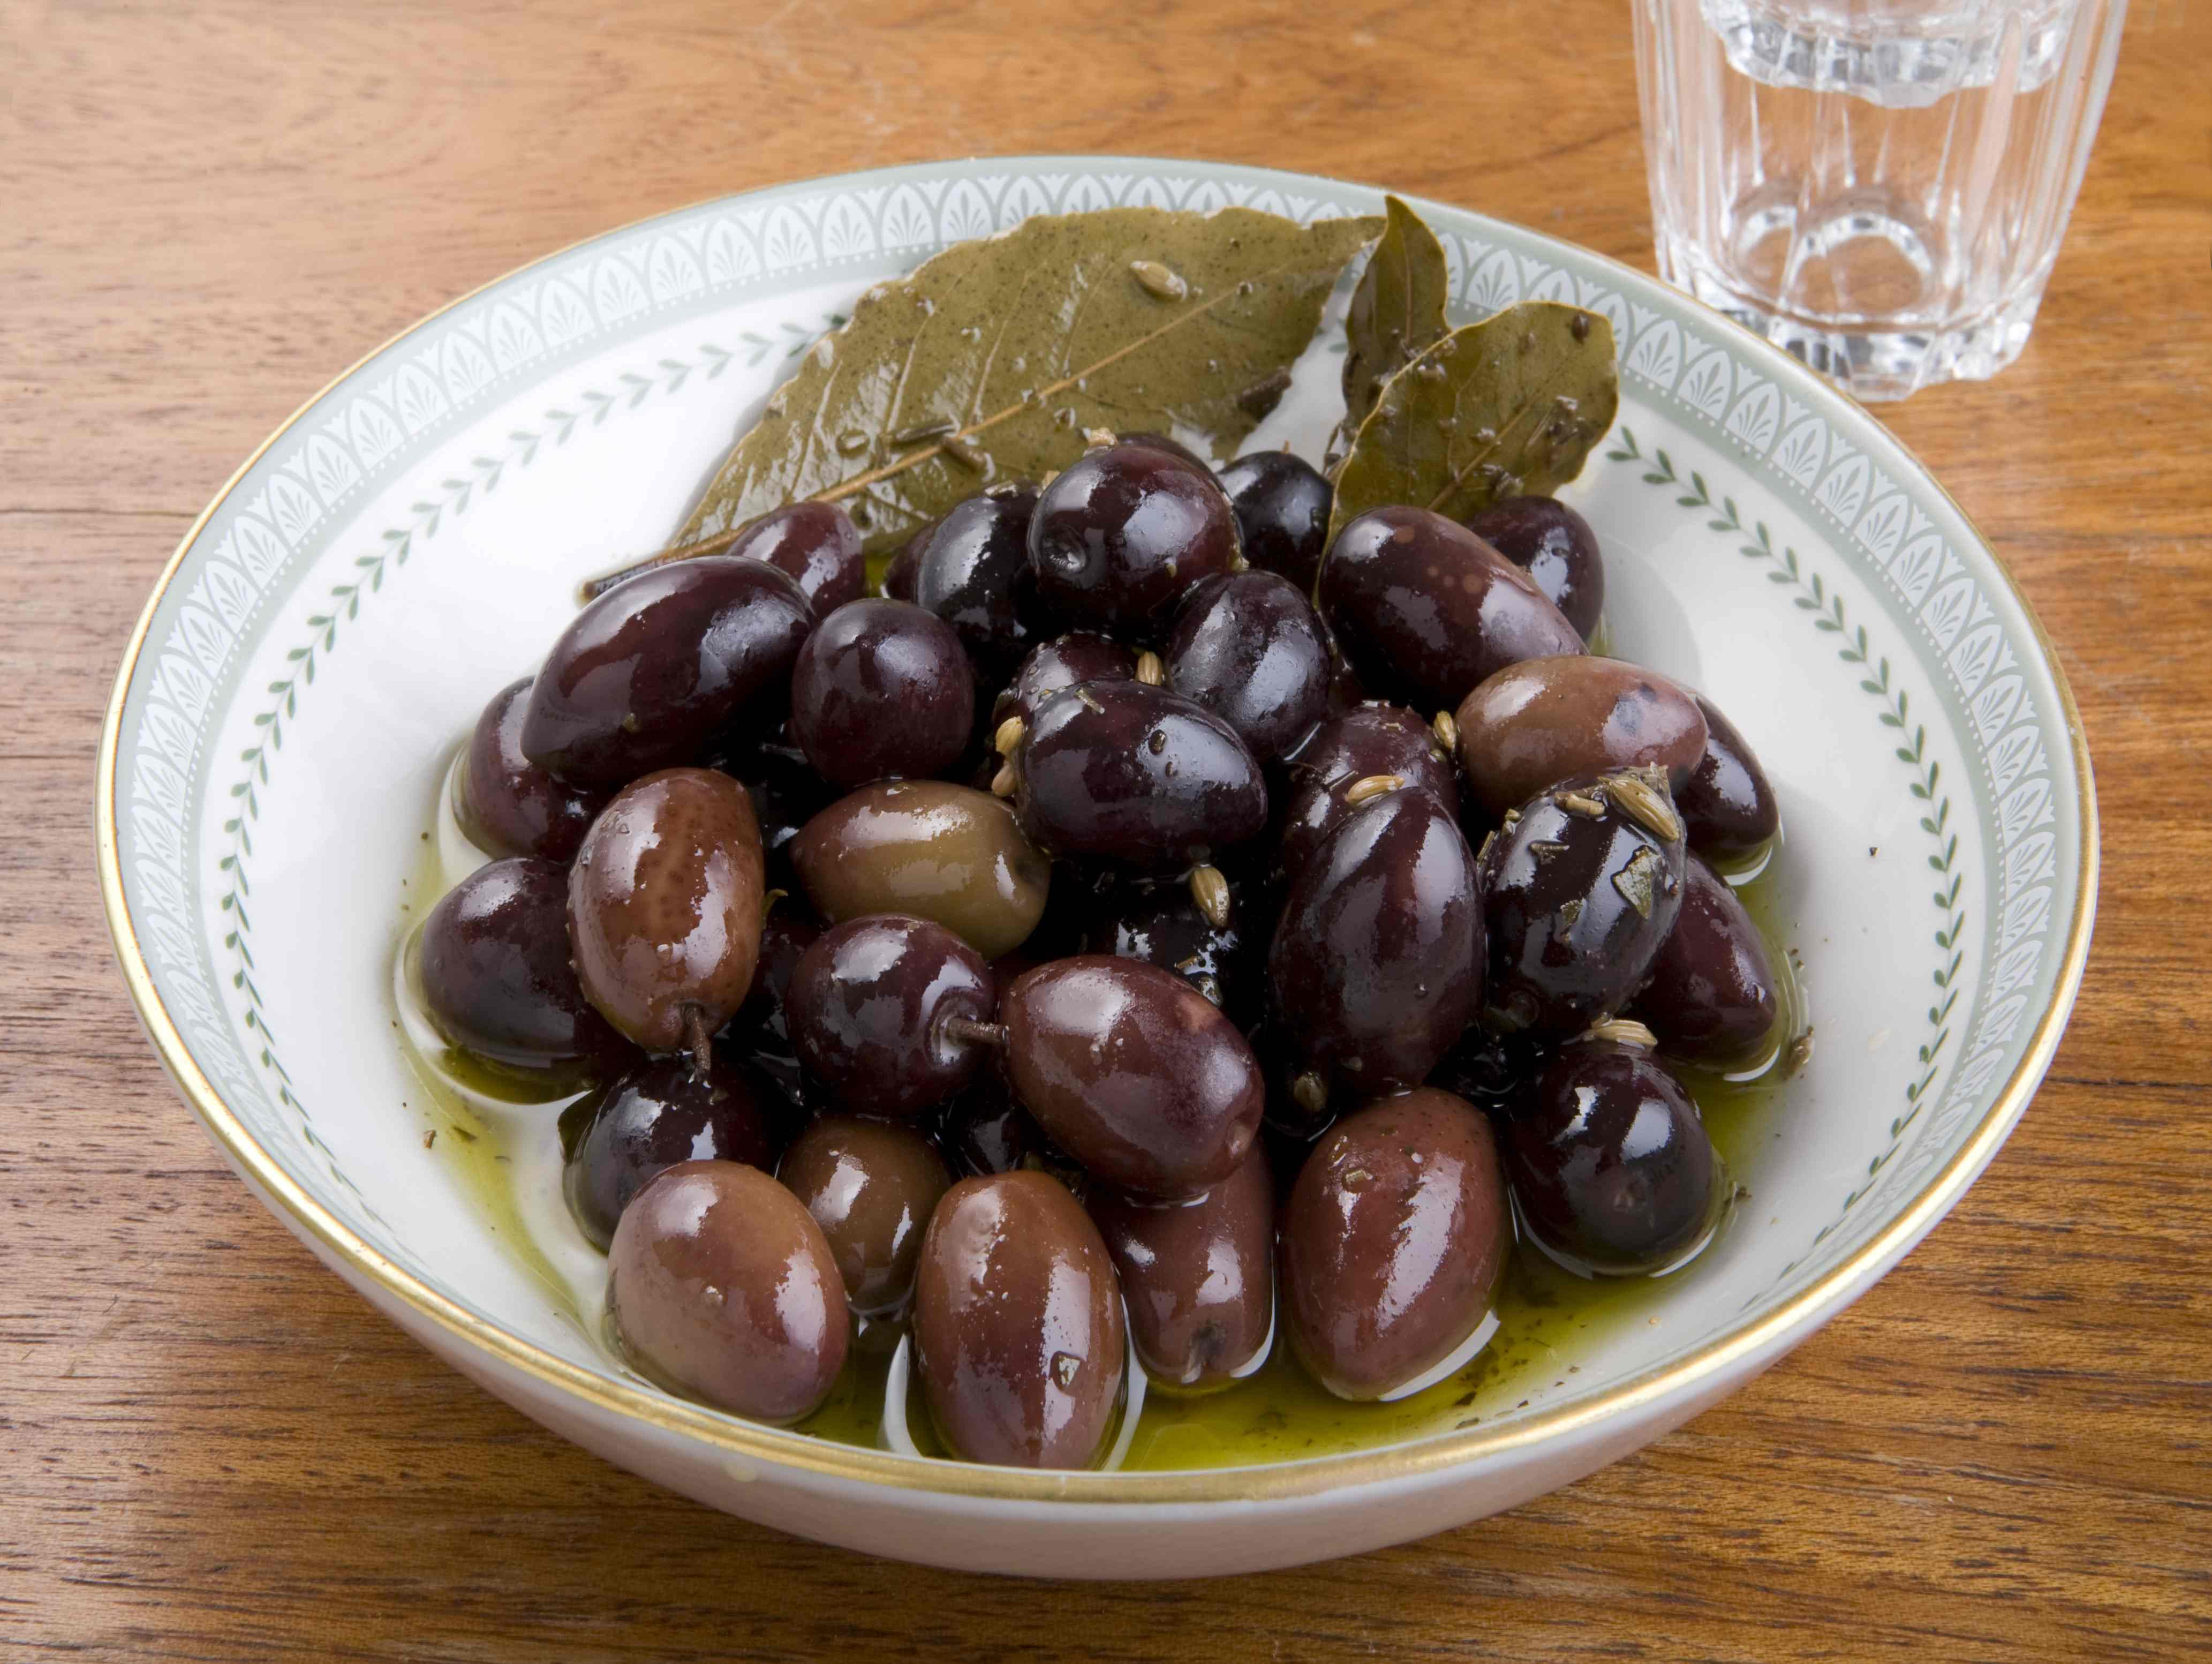 how to tell if kalamata olives are bad